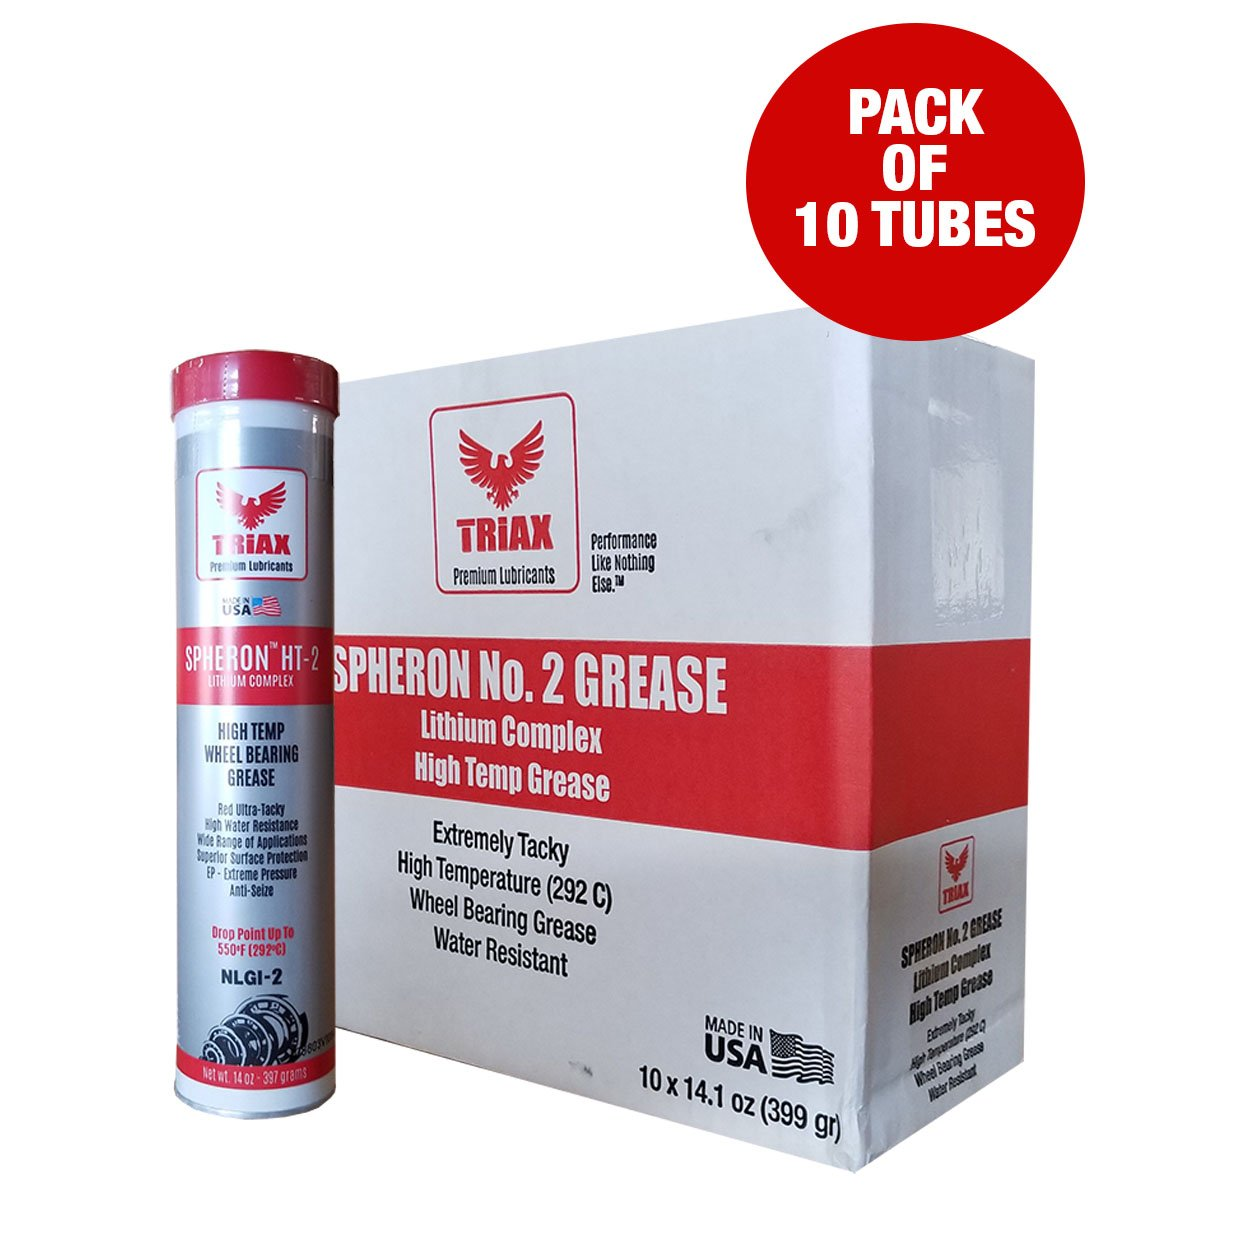 WHEEL BEARING GREASE- TRIAX SHPHERON HT-2 Lithium Complex - HIGH TEMP (550F) - ULTRA TACKY - EXTREME PRESSURE - VIRTUALLY WATERPROOF (14 oz Tube - Pack of 10)